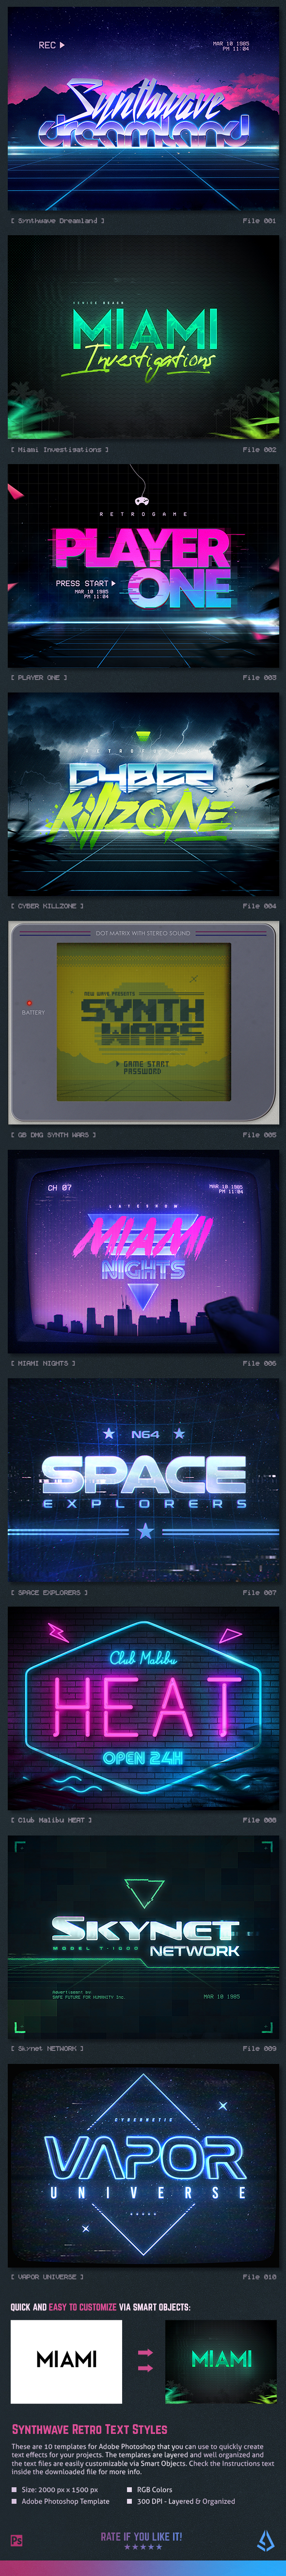 Synthwave Graphics, Designs & Templates from GraphicRiver